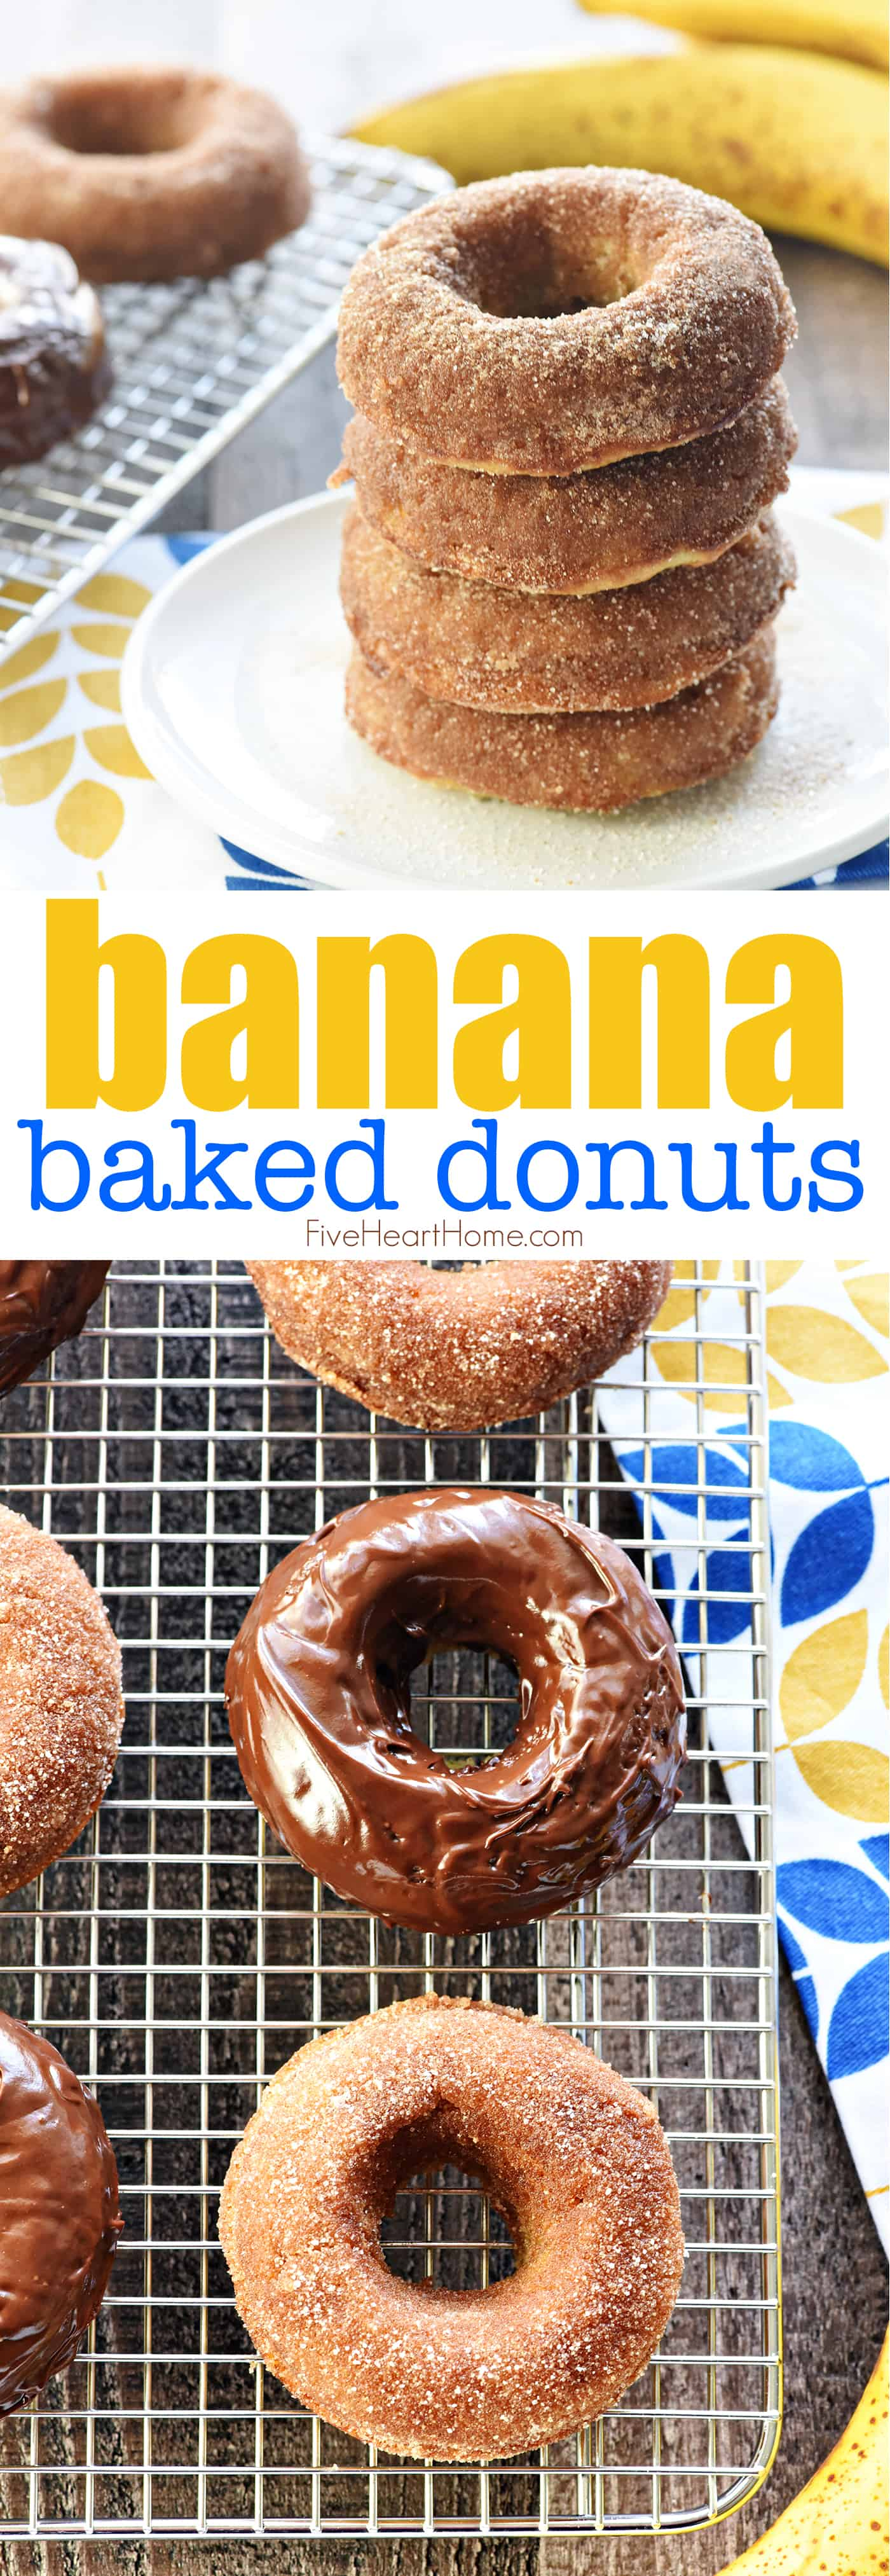 Banana Donuts on a plate and on a rack